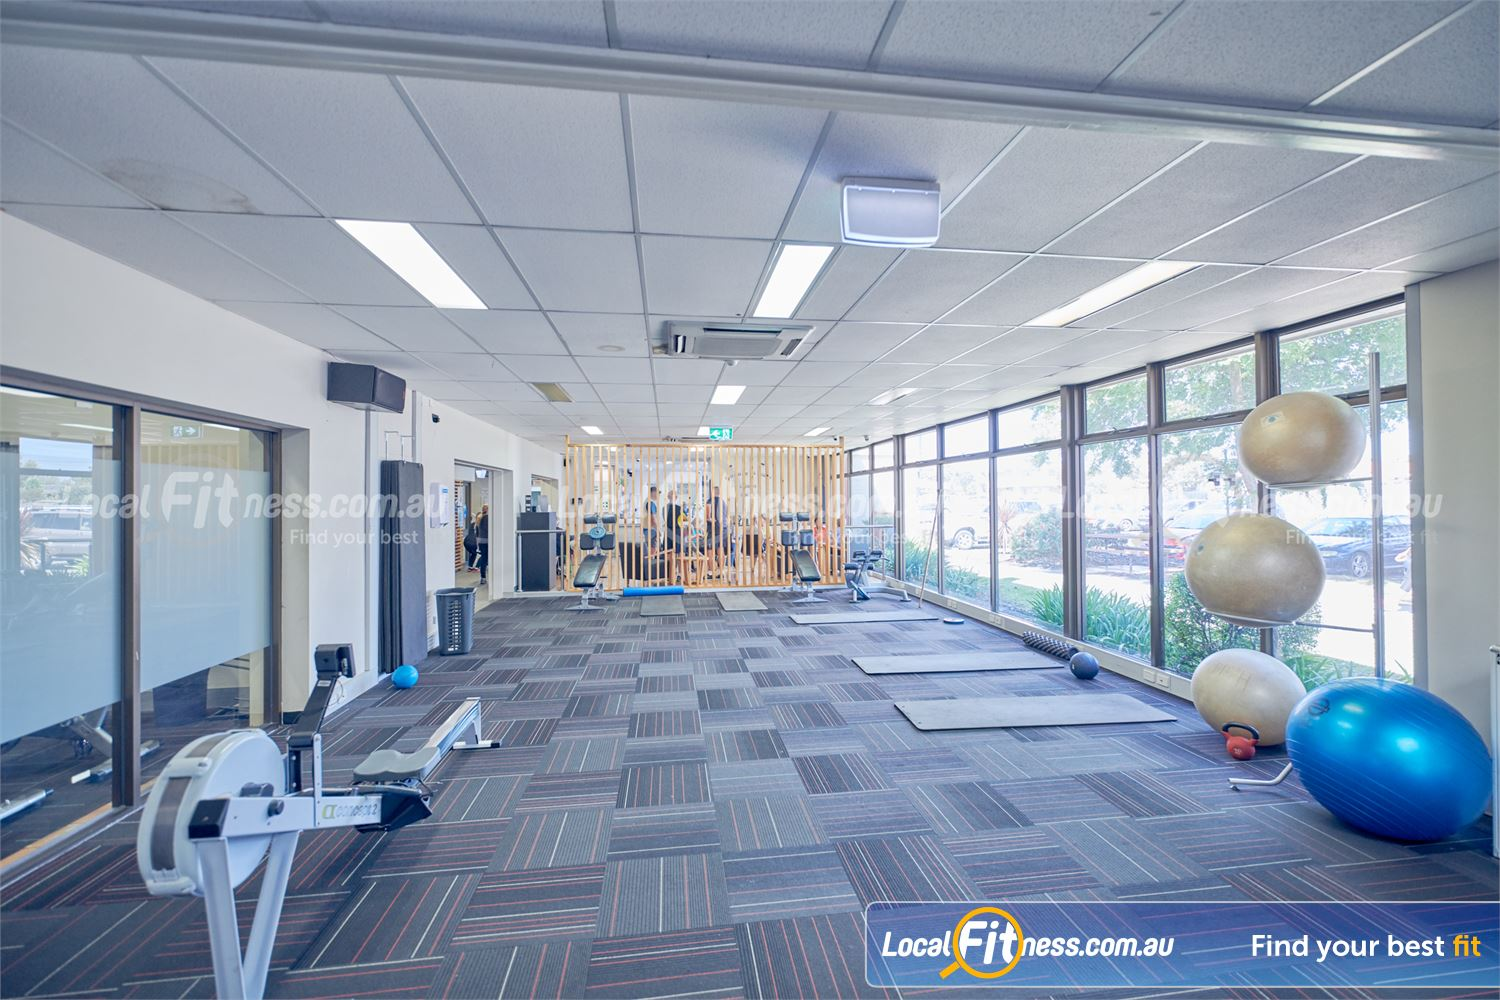 Goodlife Health Clubs Dingley Village The spacious Dingley gym is open 24/7.